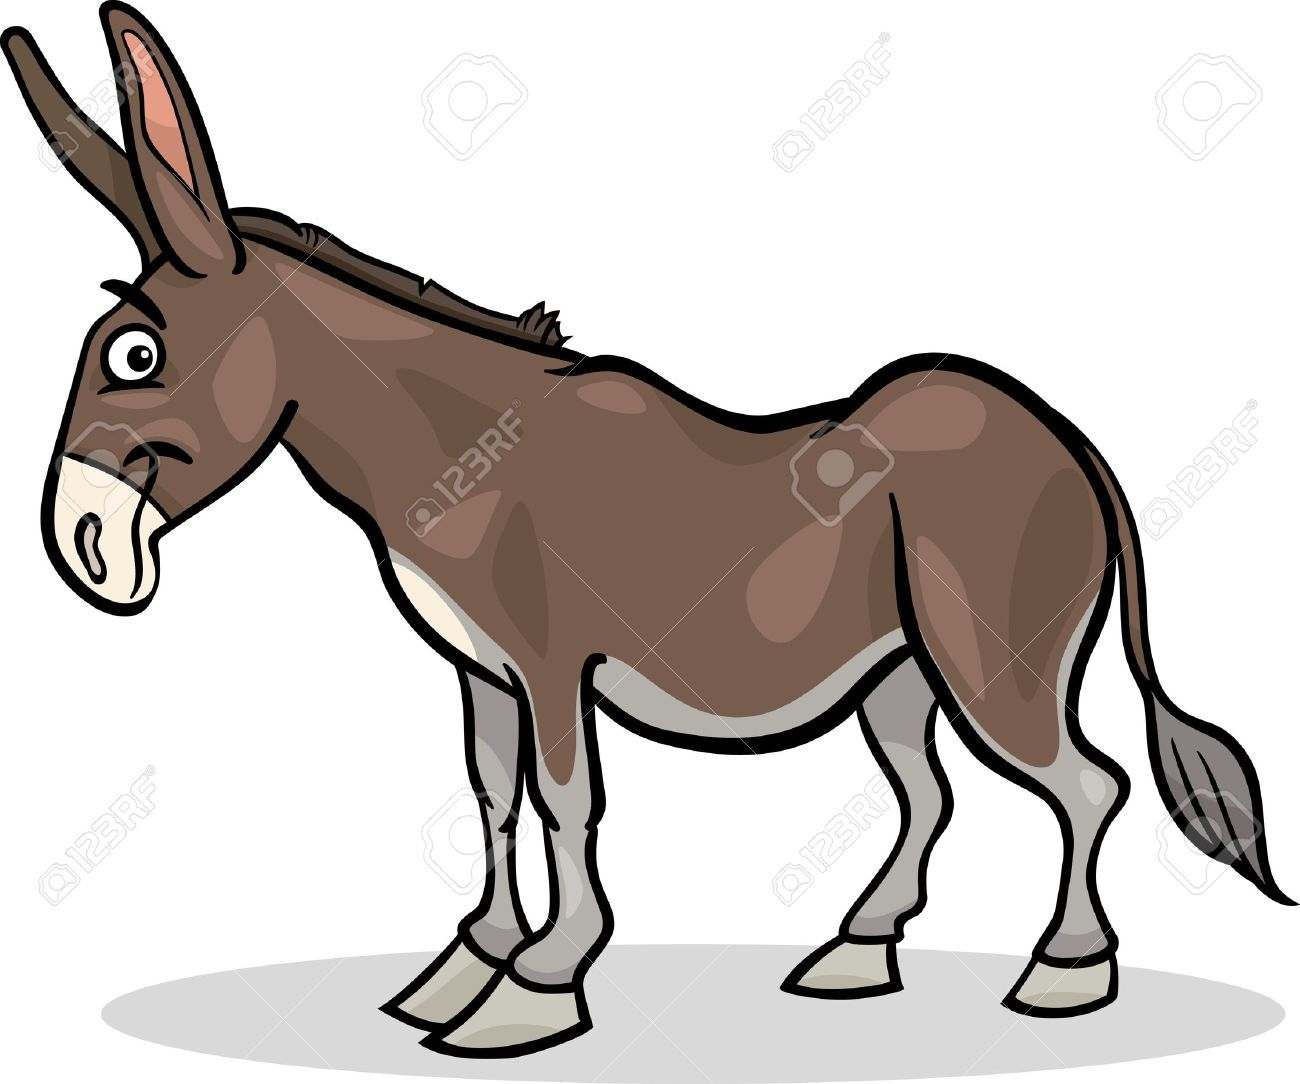 Smothered clipart picture freeuse download mules clipart - Google Search   ART of the Mule   Moose art ... picture freeuse download